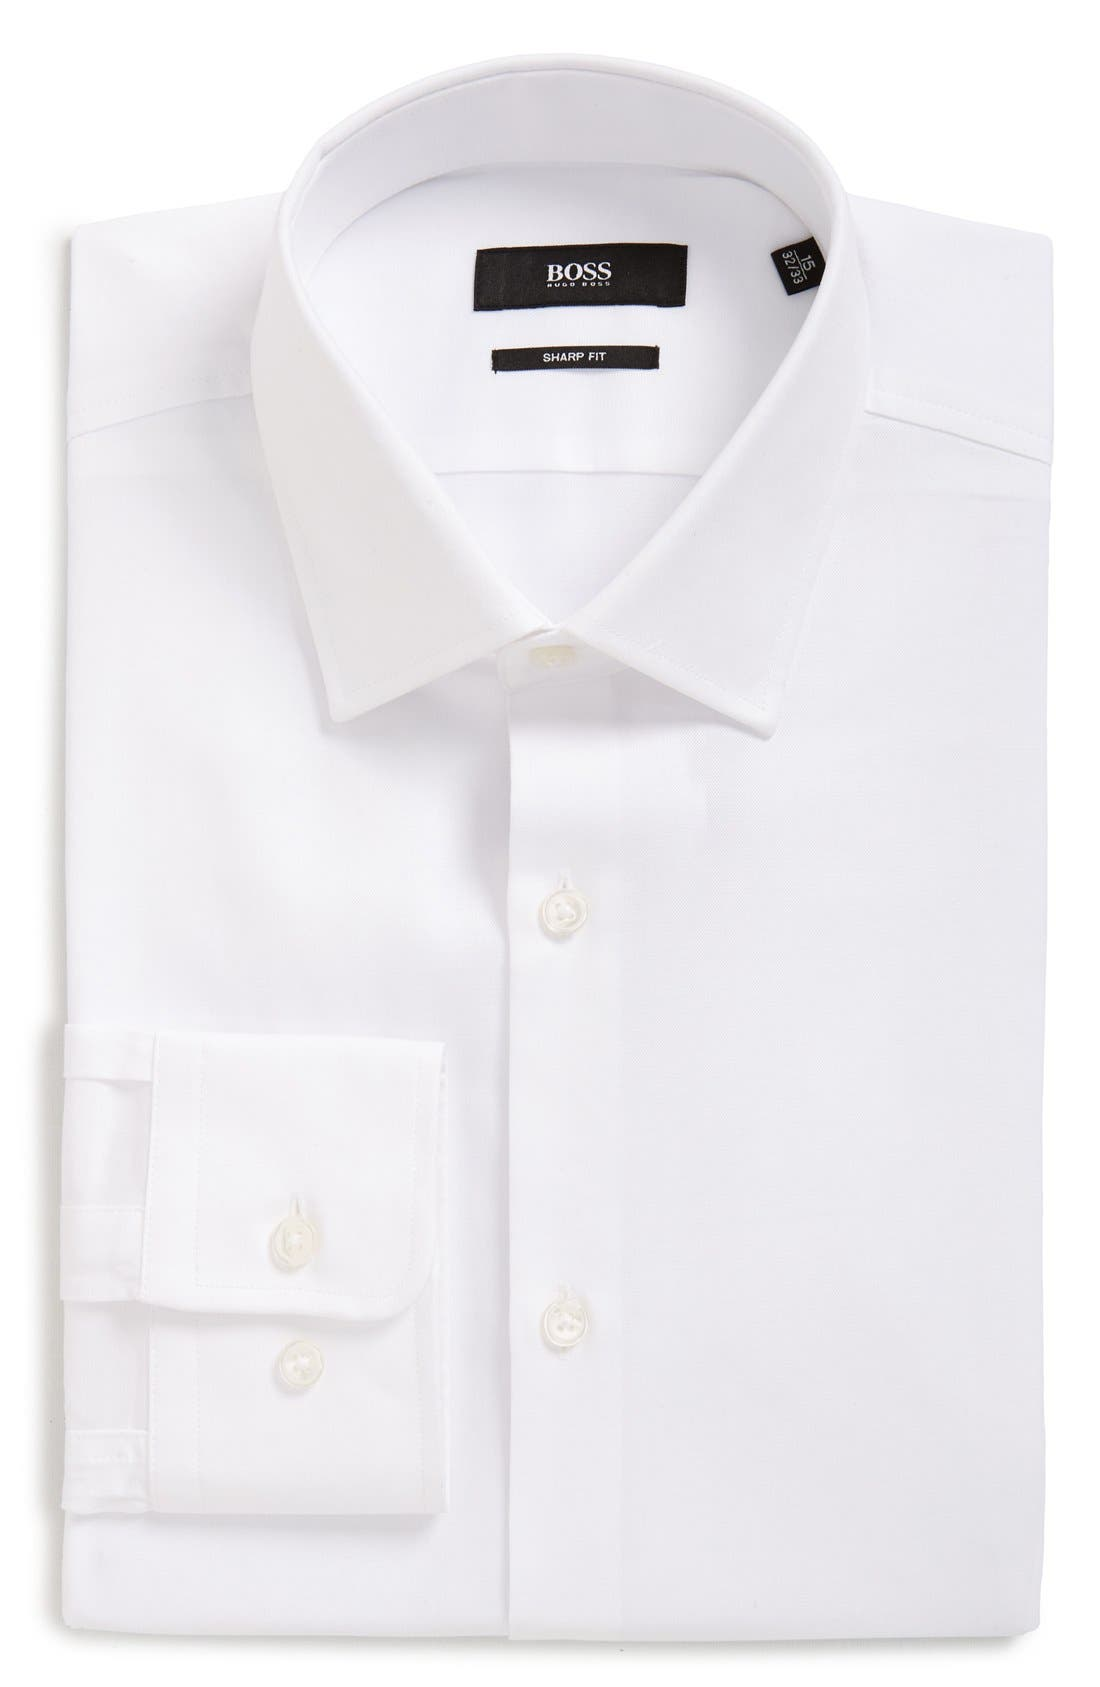 Alternate Image 1 Selected - BOSS Sharp Fit Solid Dress Shirt